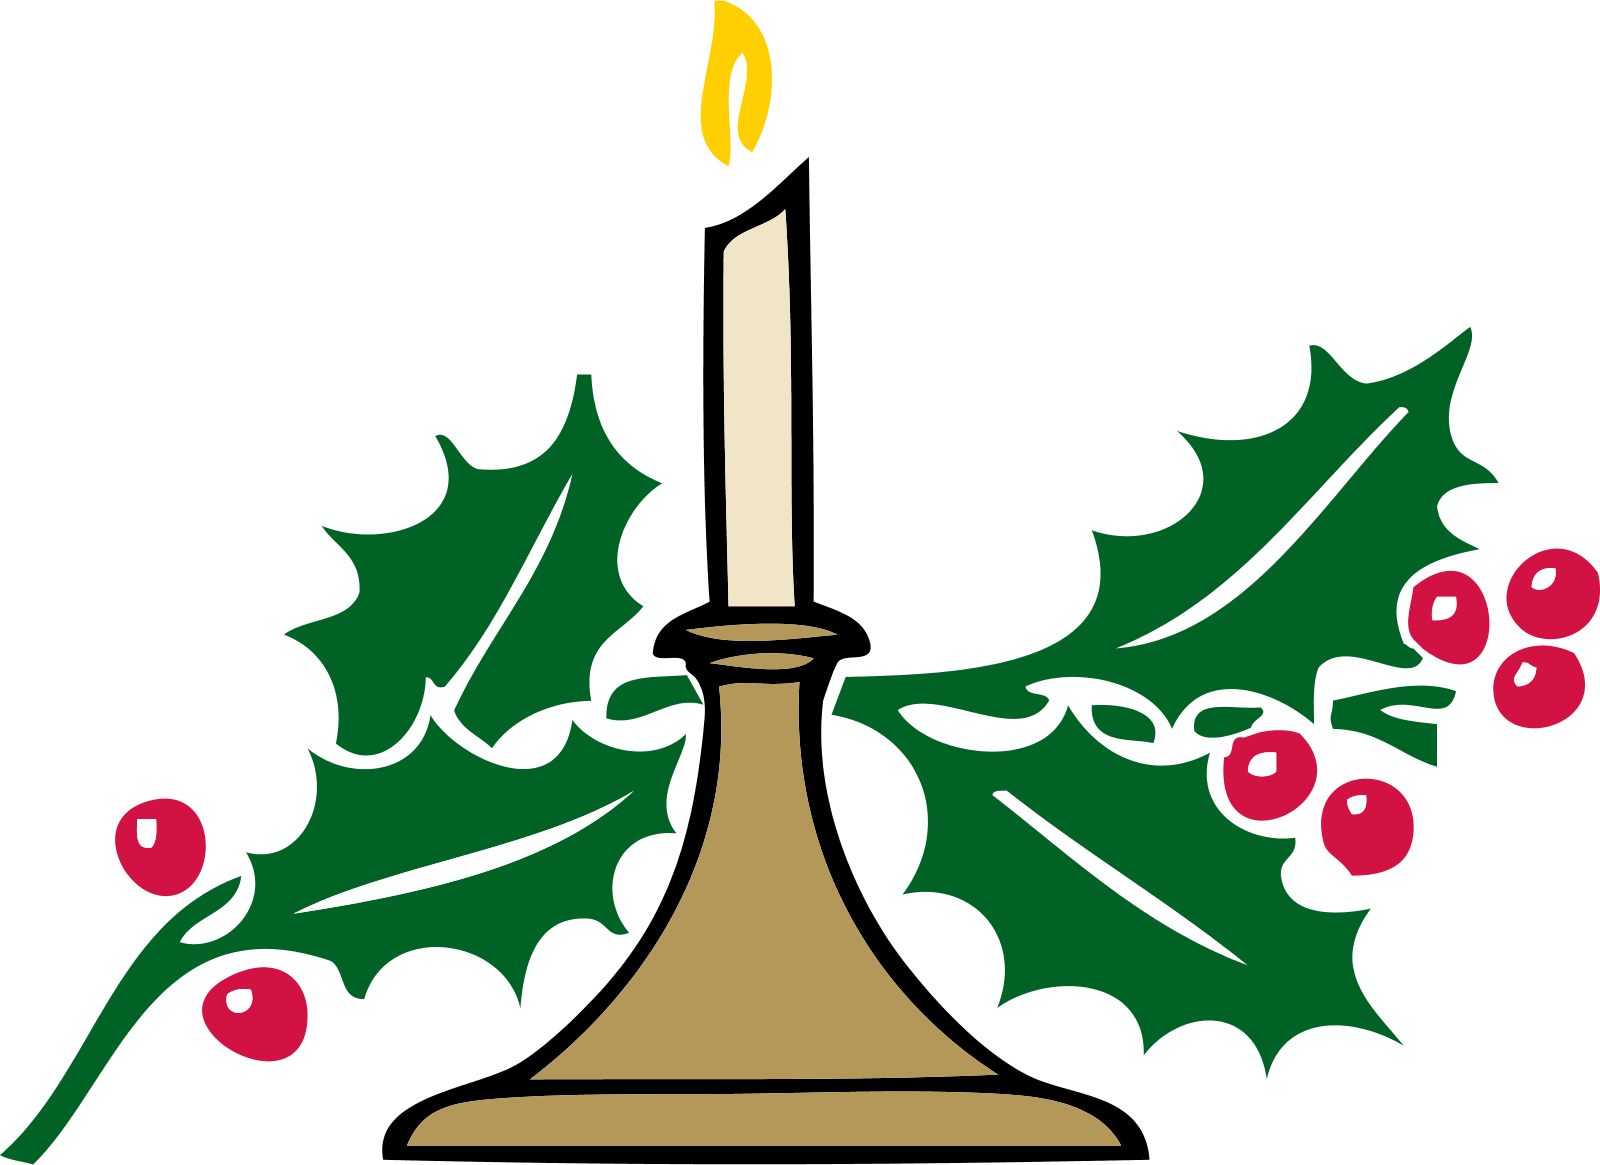 Christmas candles clipart clipart stock Christmas Candle Clipart | Clipart Panda - Free Clipart Images clipart stock